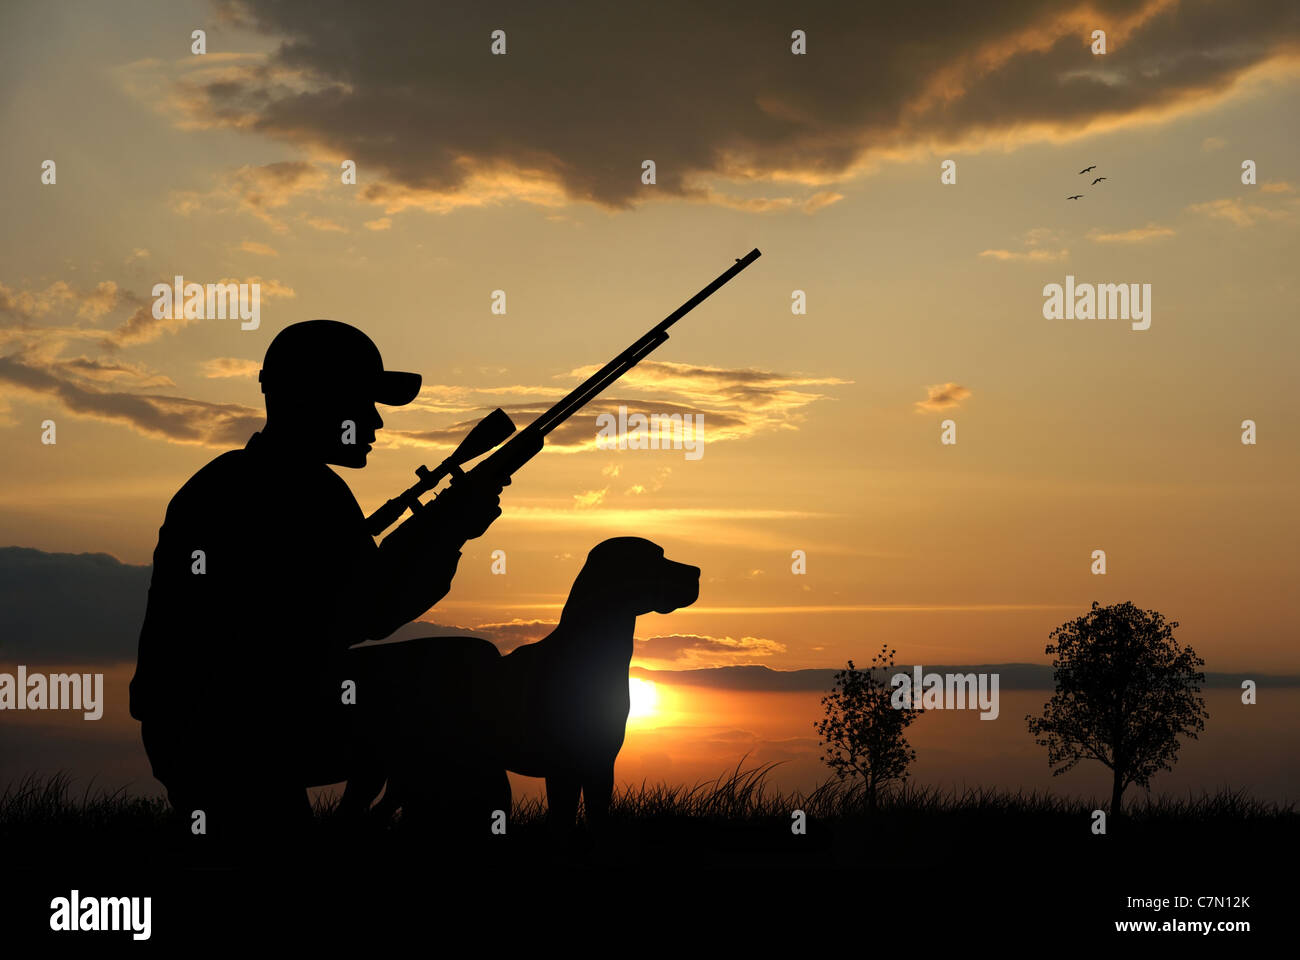 Hunter with his dog silhouettes on sunset background - Stock Image